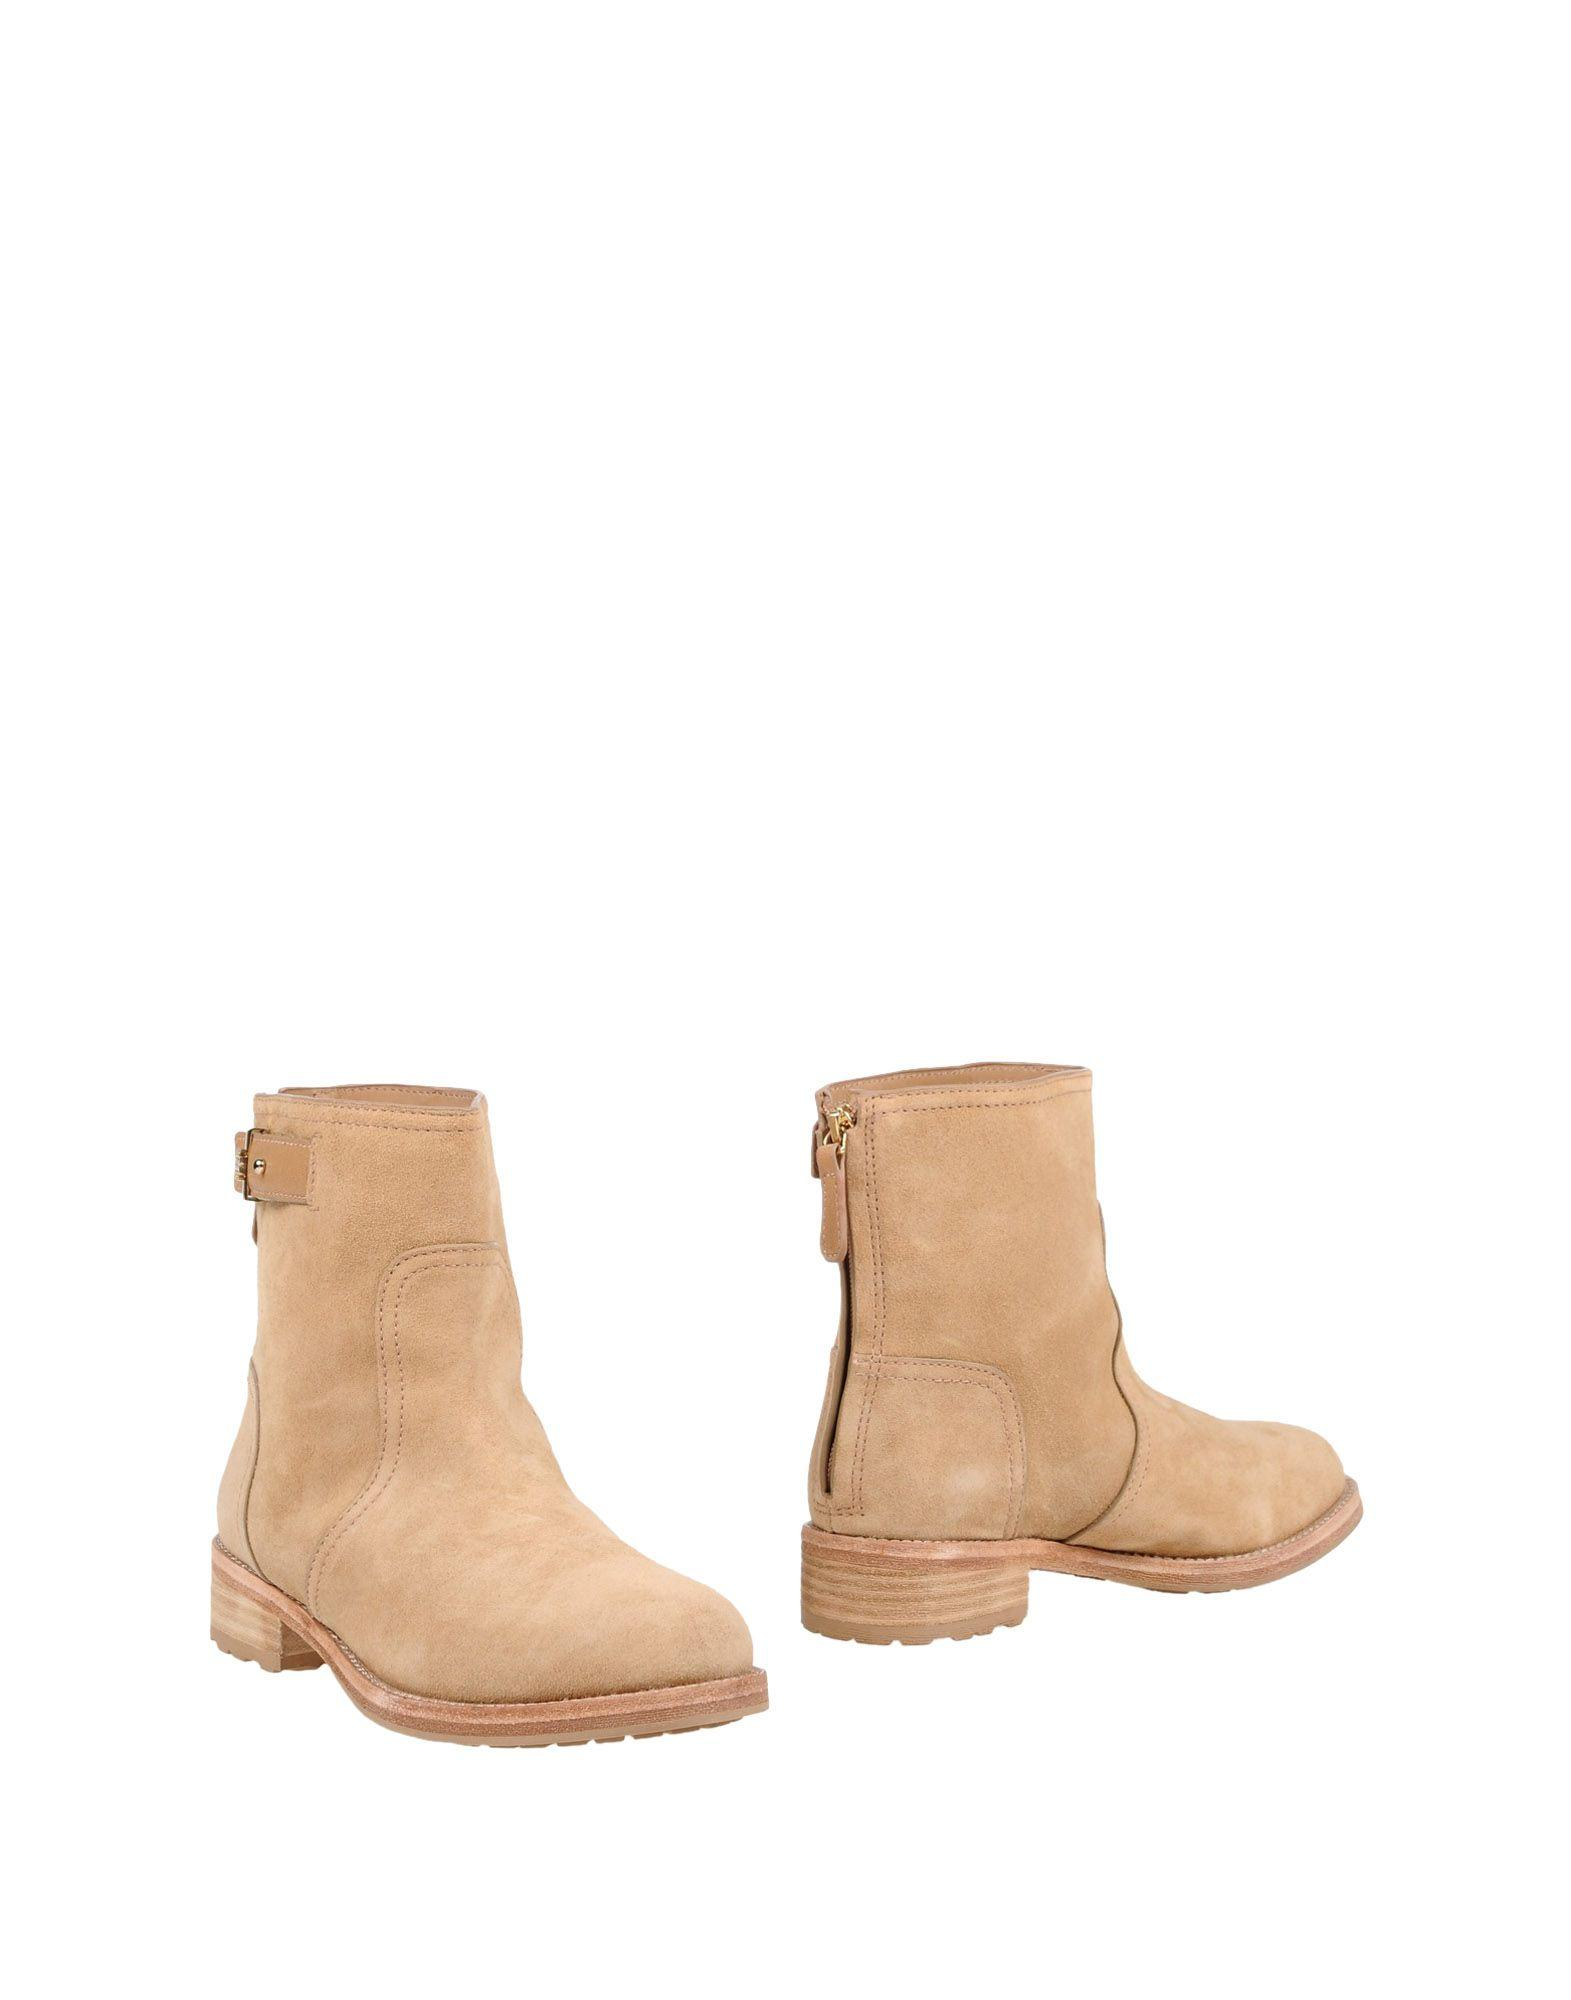 Tory Burch Ankle Boots In Camel